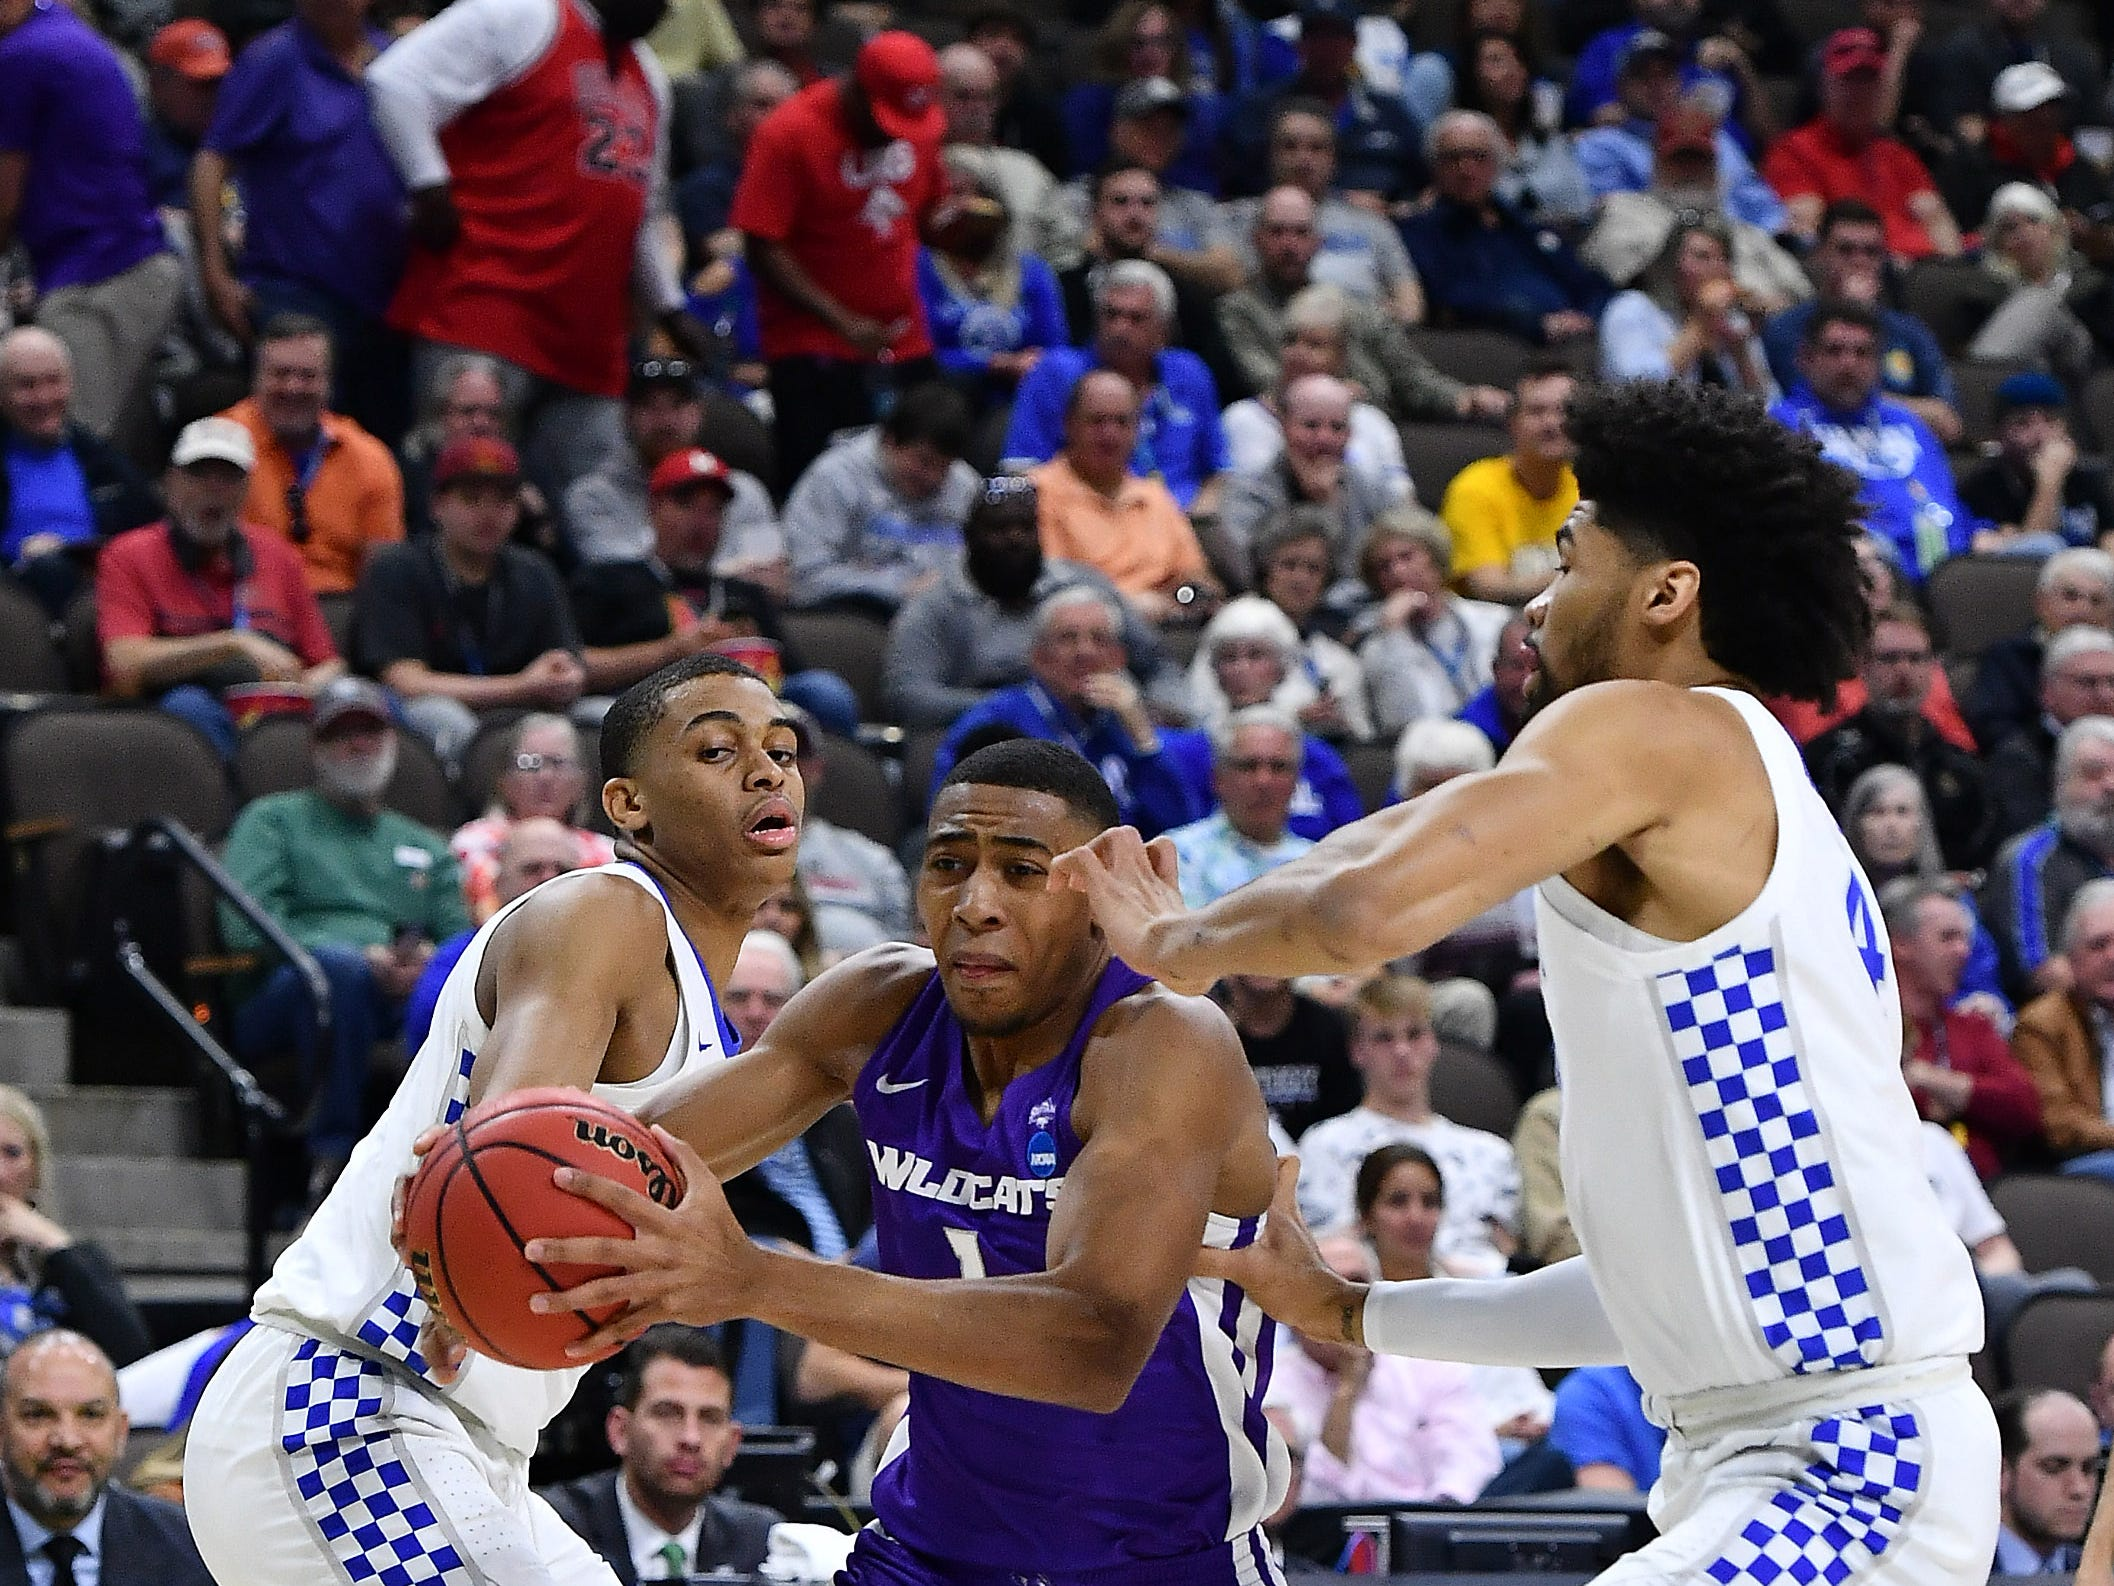 Mar 21, 2019; Jacksonville, FL, USA; Abilene Christian Wildcats forward Jaren Lewis (1) dribbles the ball as Kentucky Wildcats forward Reid Travis (22) defends during the first half in the first round of the 2019 NCAA Tournament at Jacksonville Veterans Memorial Arena. Mandatory Credit: John David Mercer-USA TODAY Sports